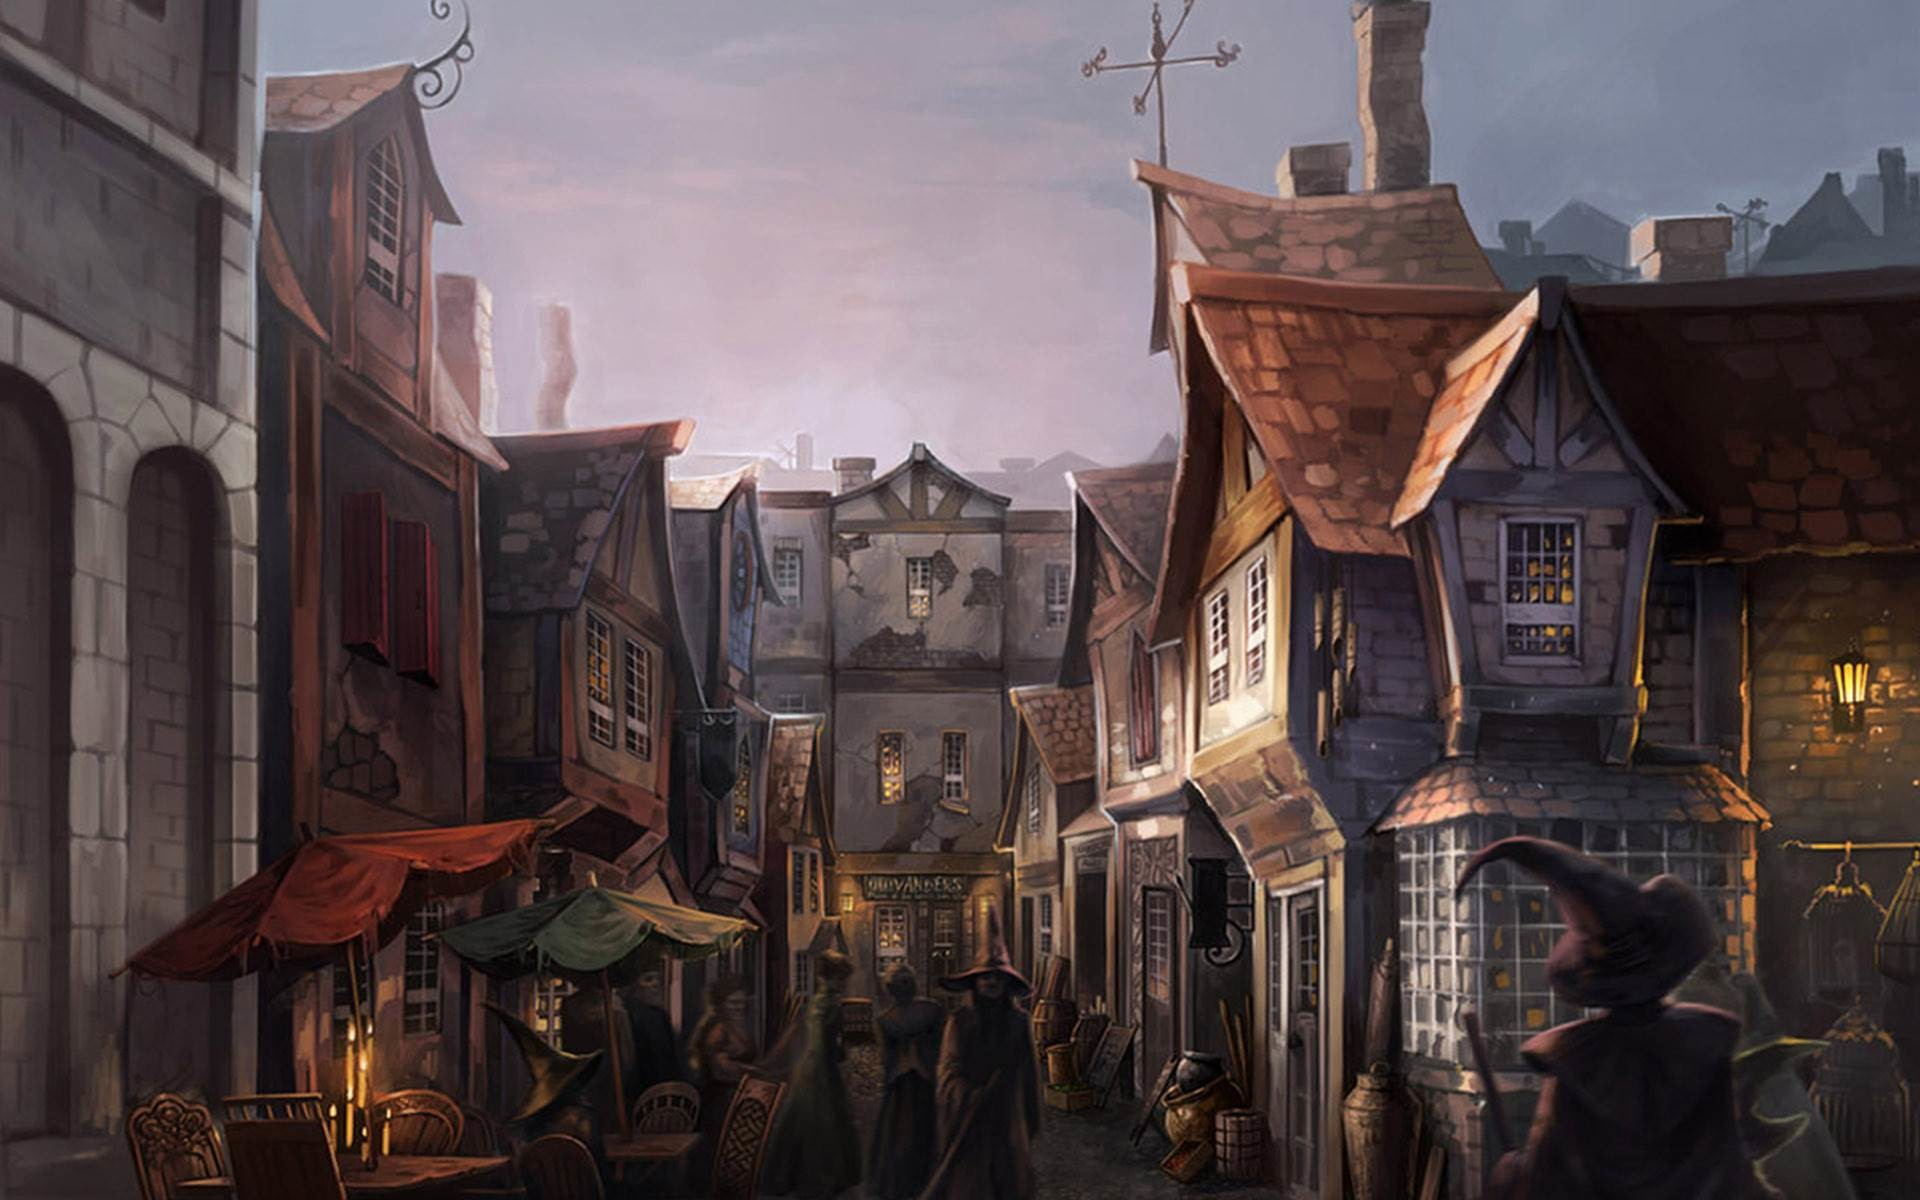 harry potter desktop wallpaper,action adventure game,town,adventure game,painting,strategy video game